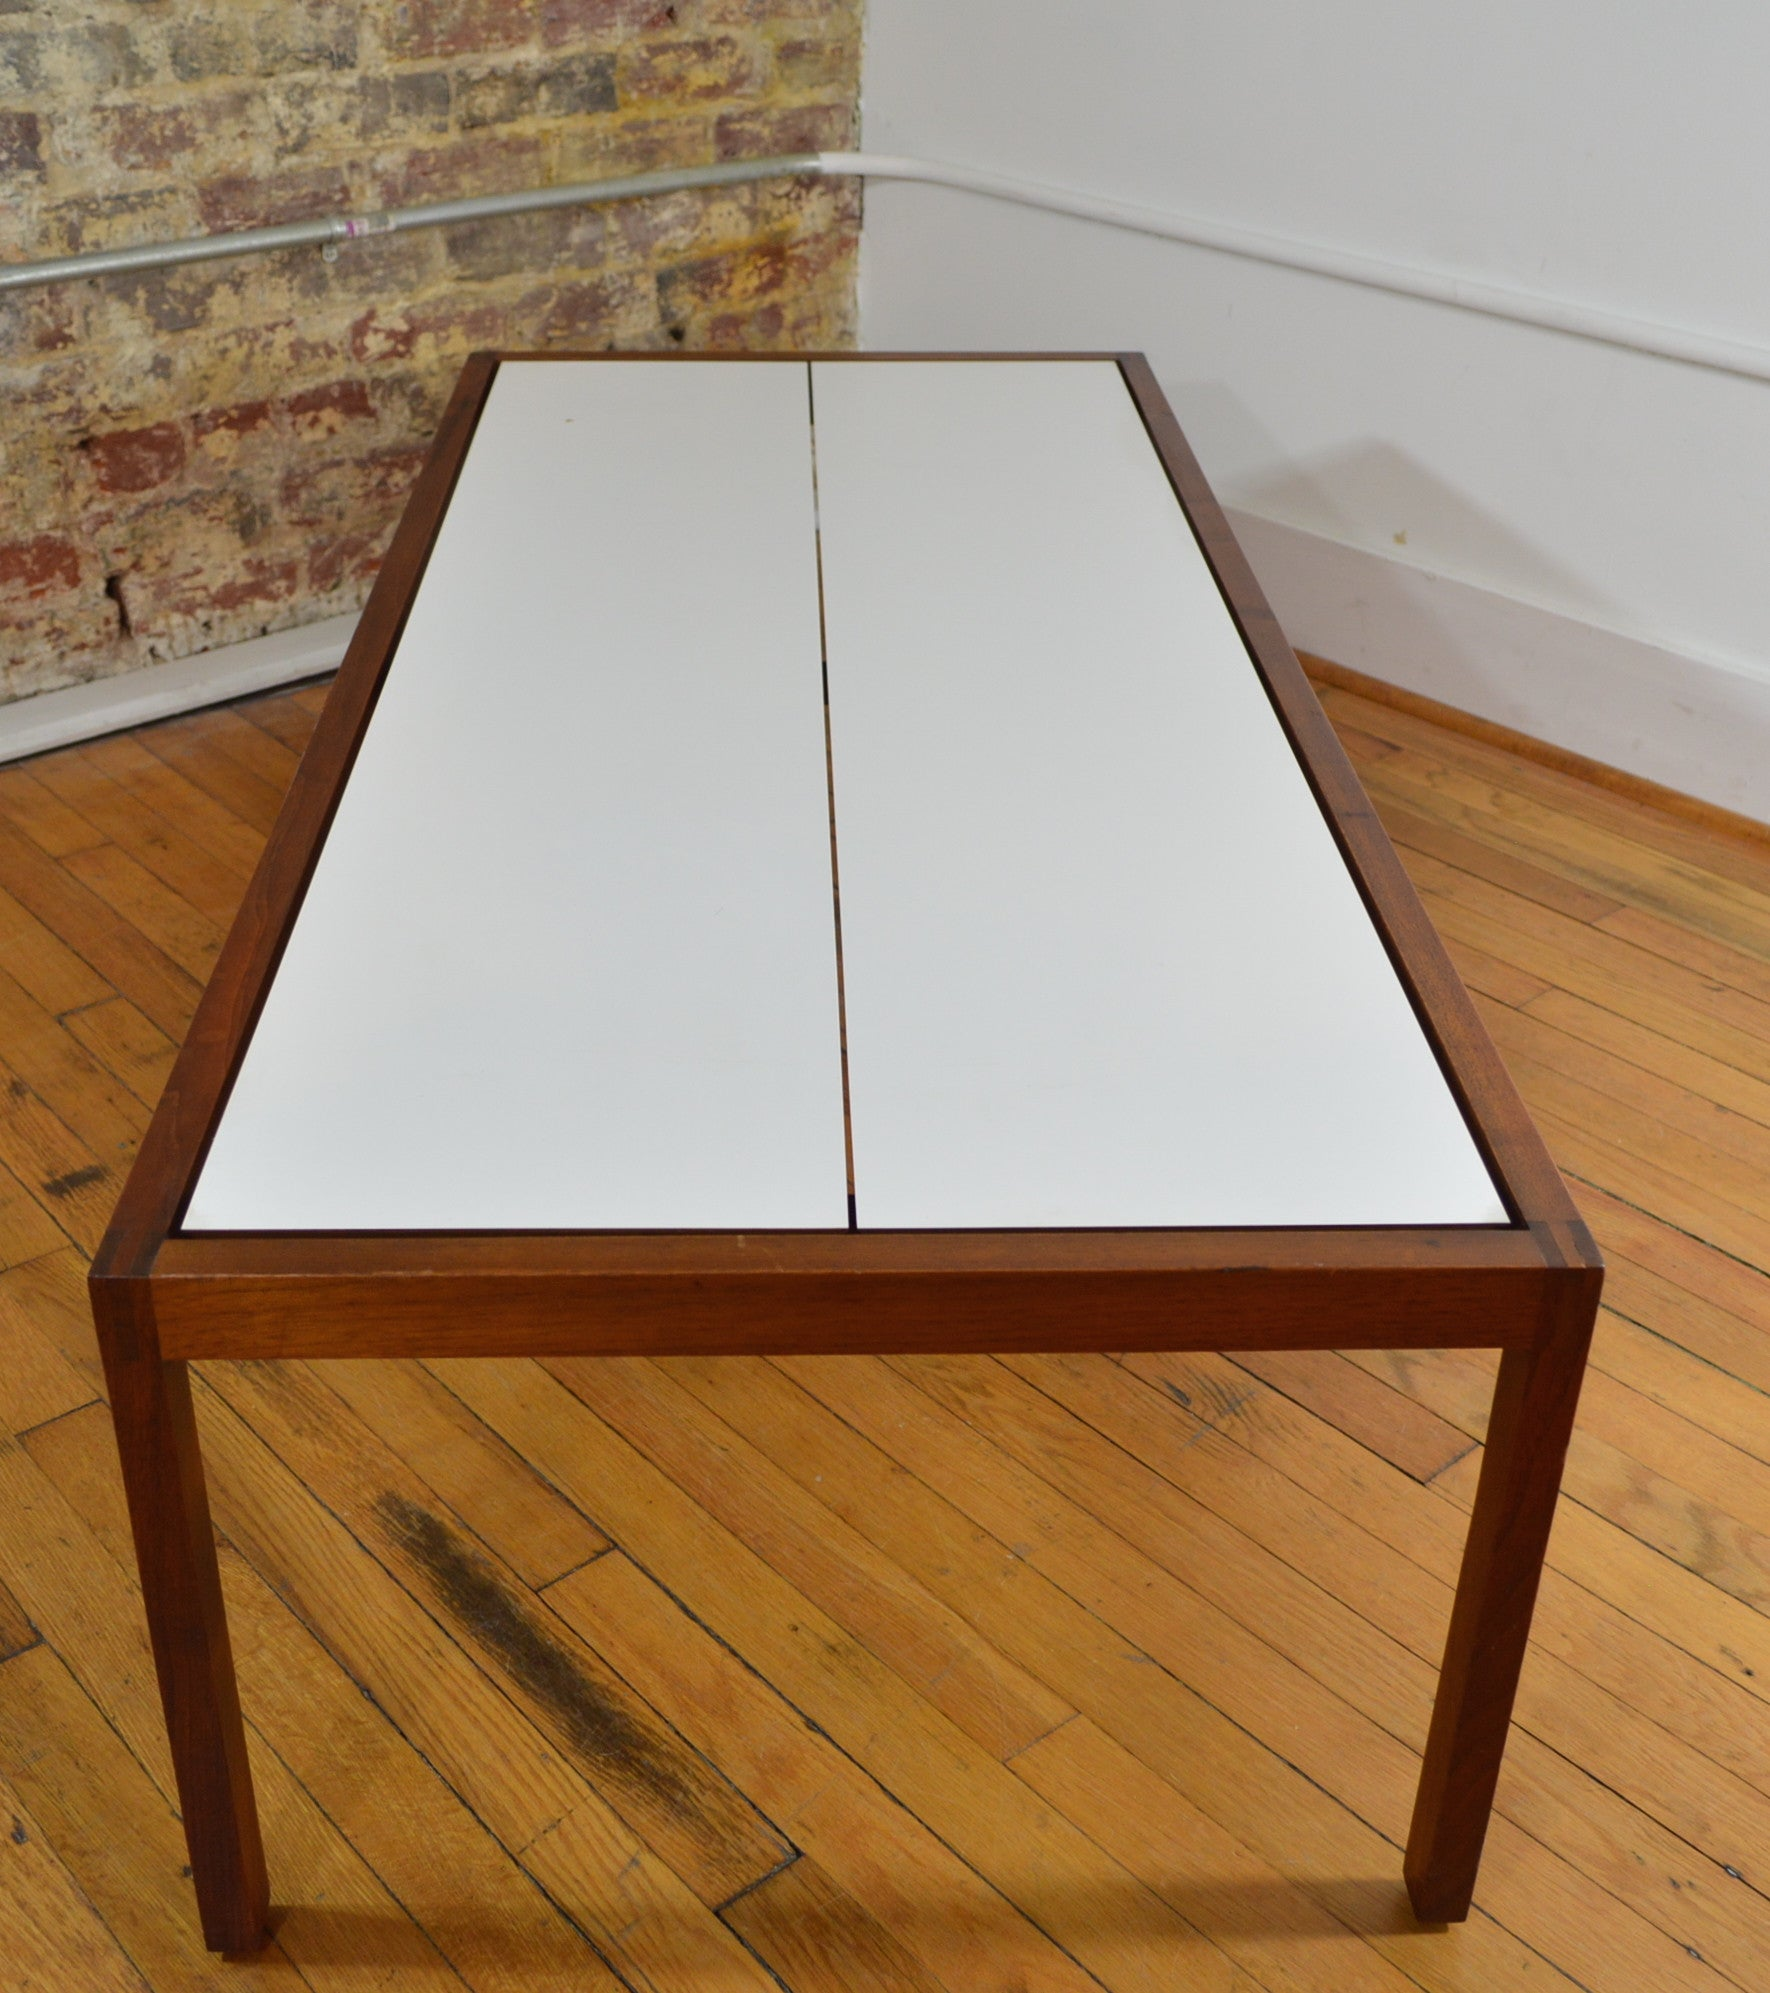 Knoll Walnut and Laminate Coffee Table White GalaxieModern